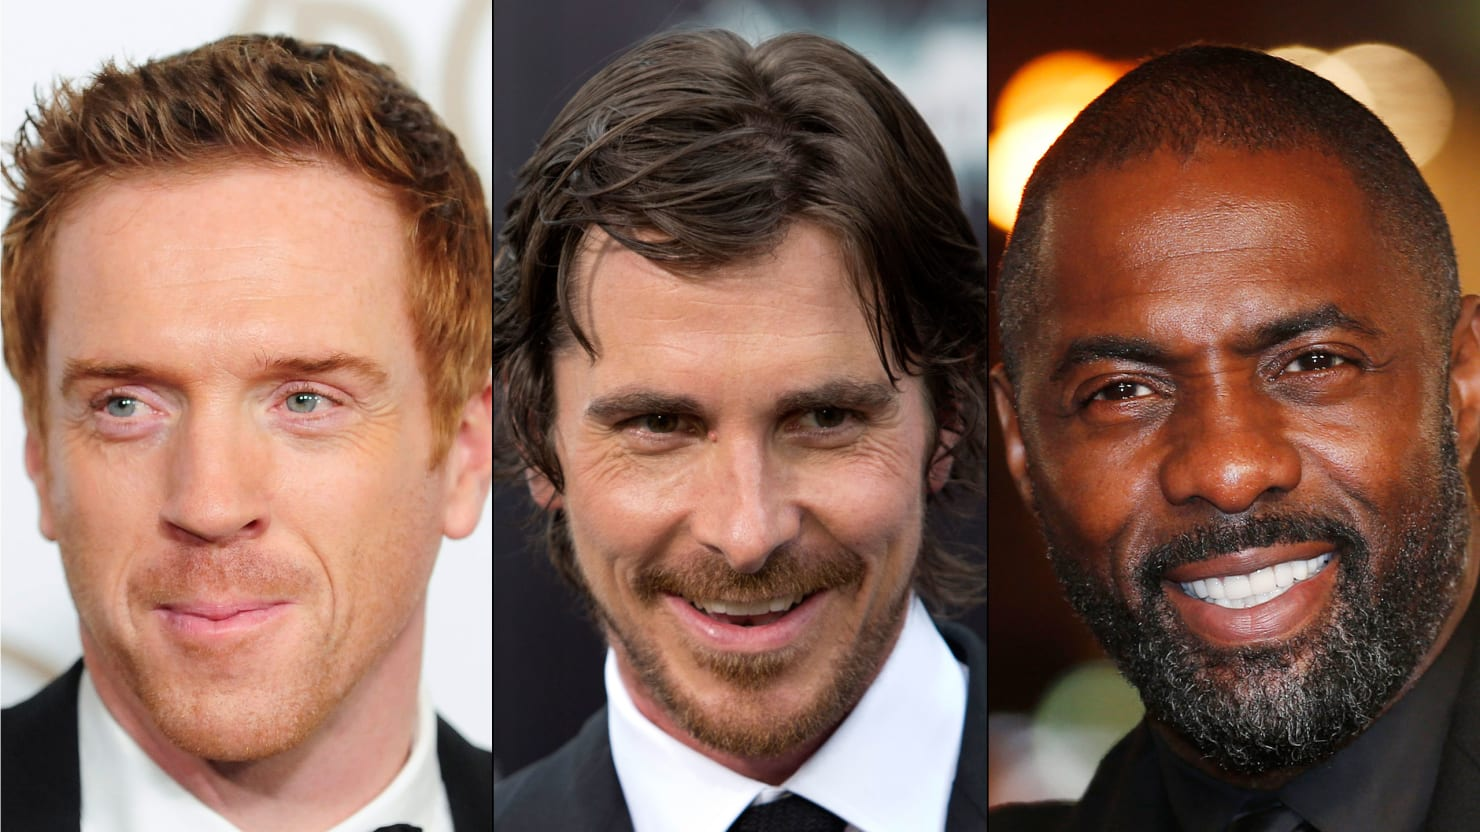 You're Not American?! Christian Bale, Chiwetel Ejiofor & More Actors Who Are Actually British